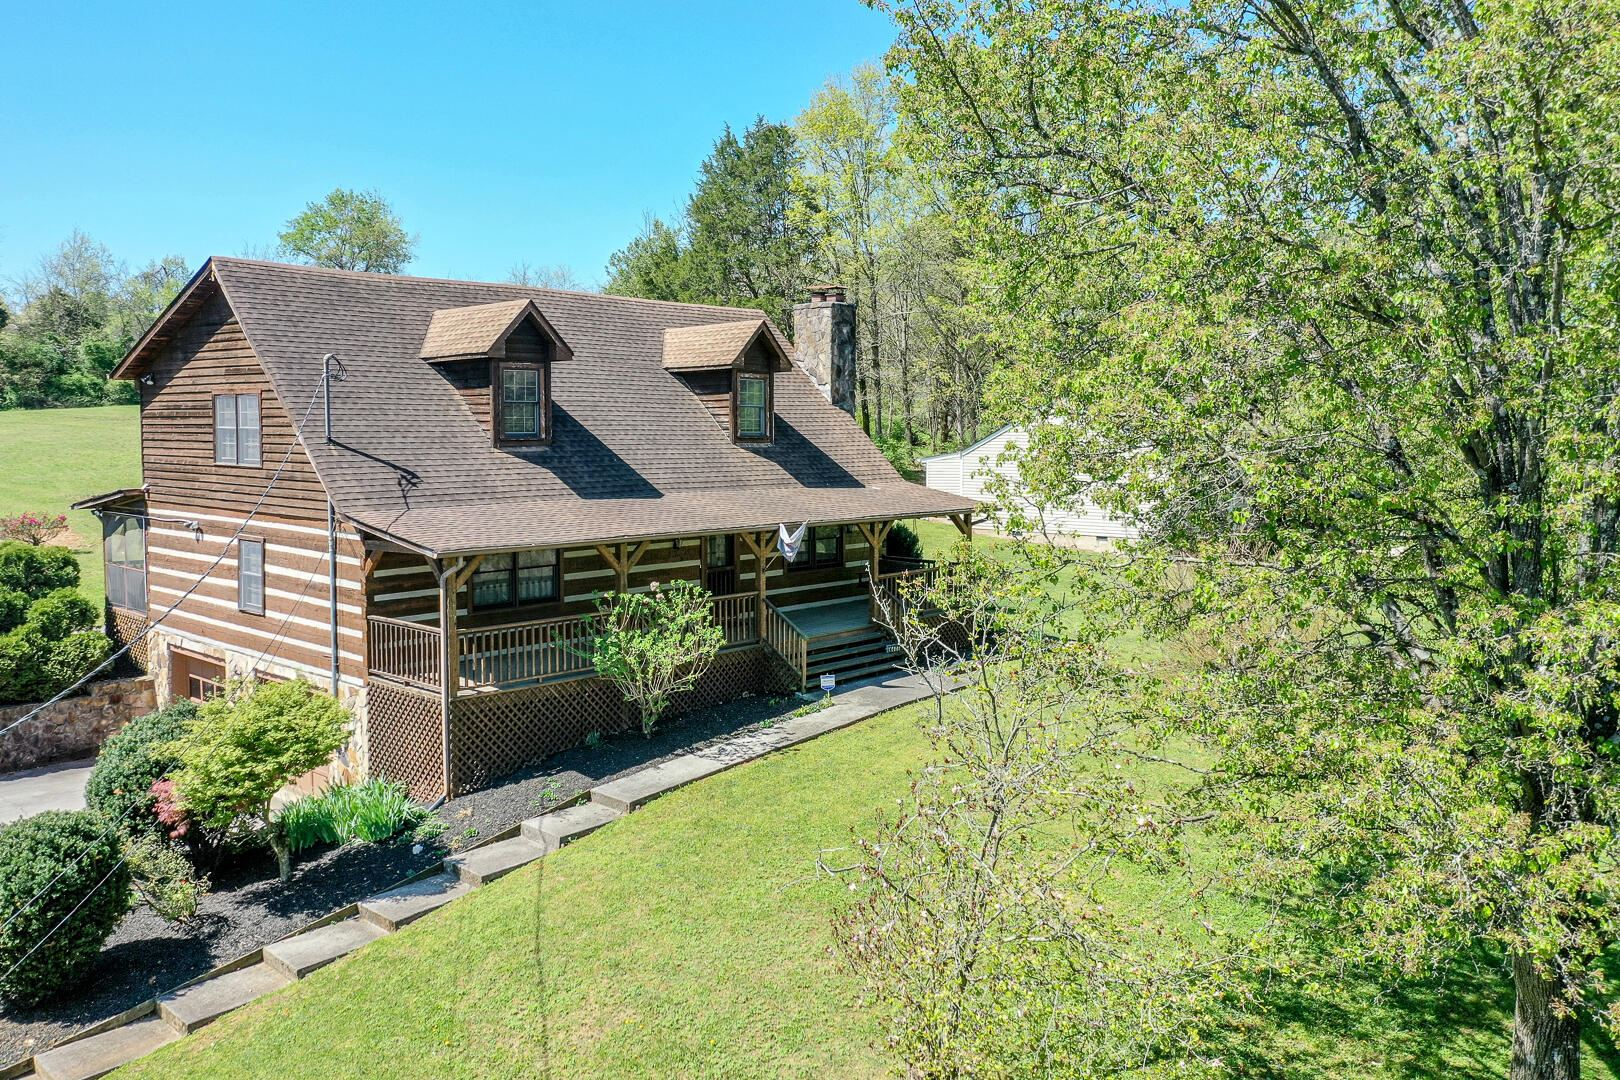 Photo of 4405 Pleasant Ridge Rd, Knoxville, TN 37912 (MLS # 1148779)